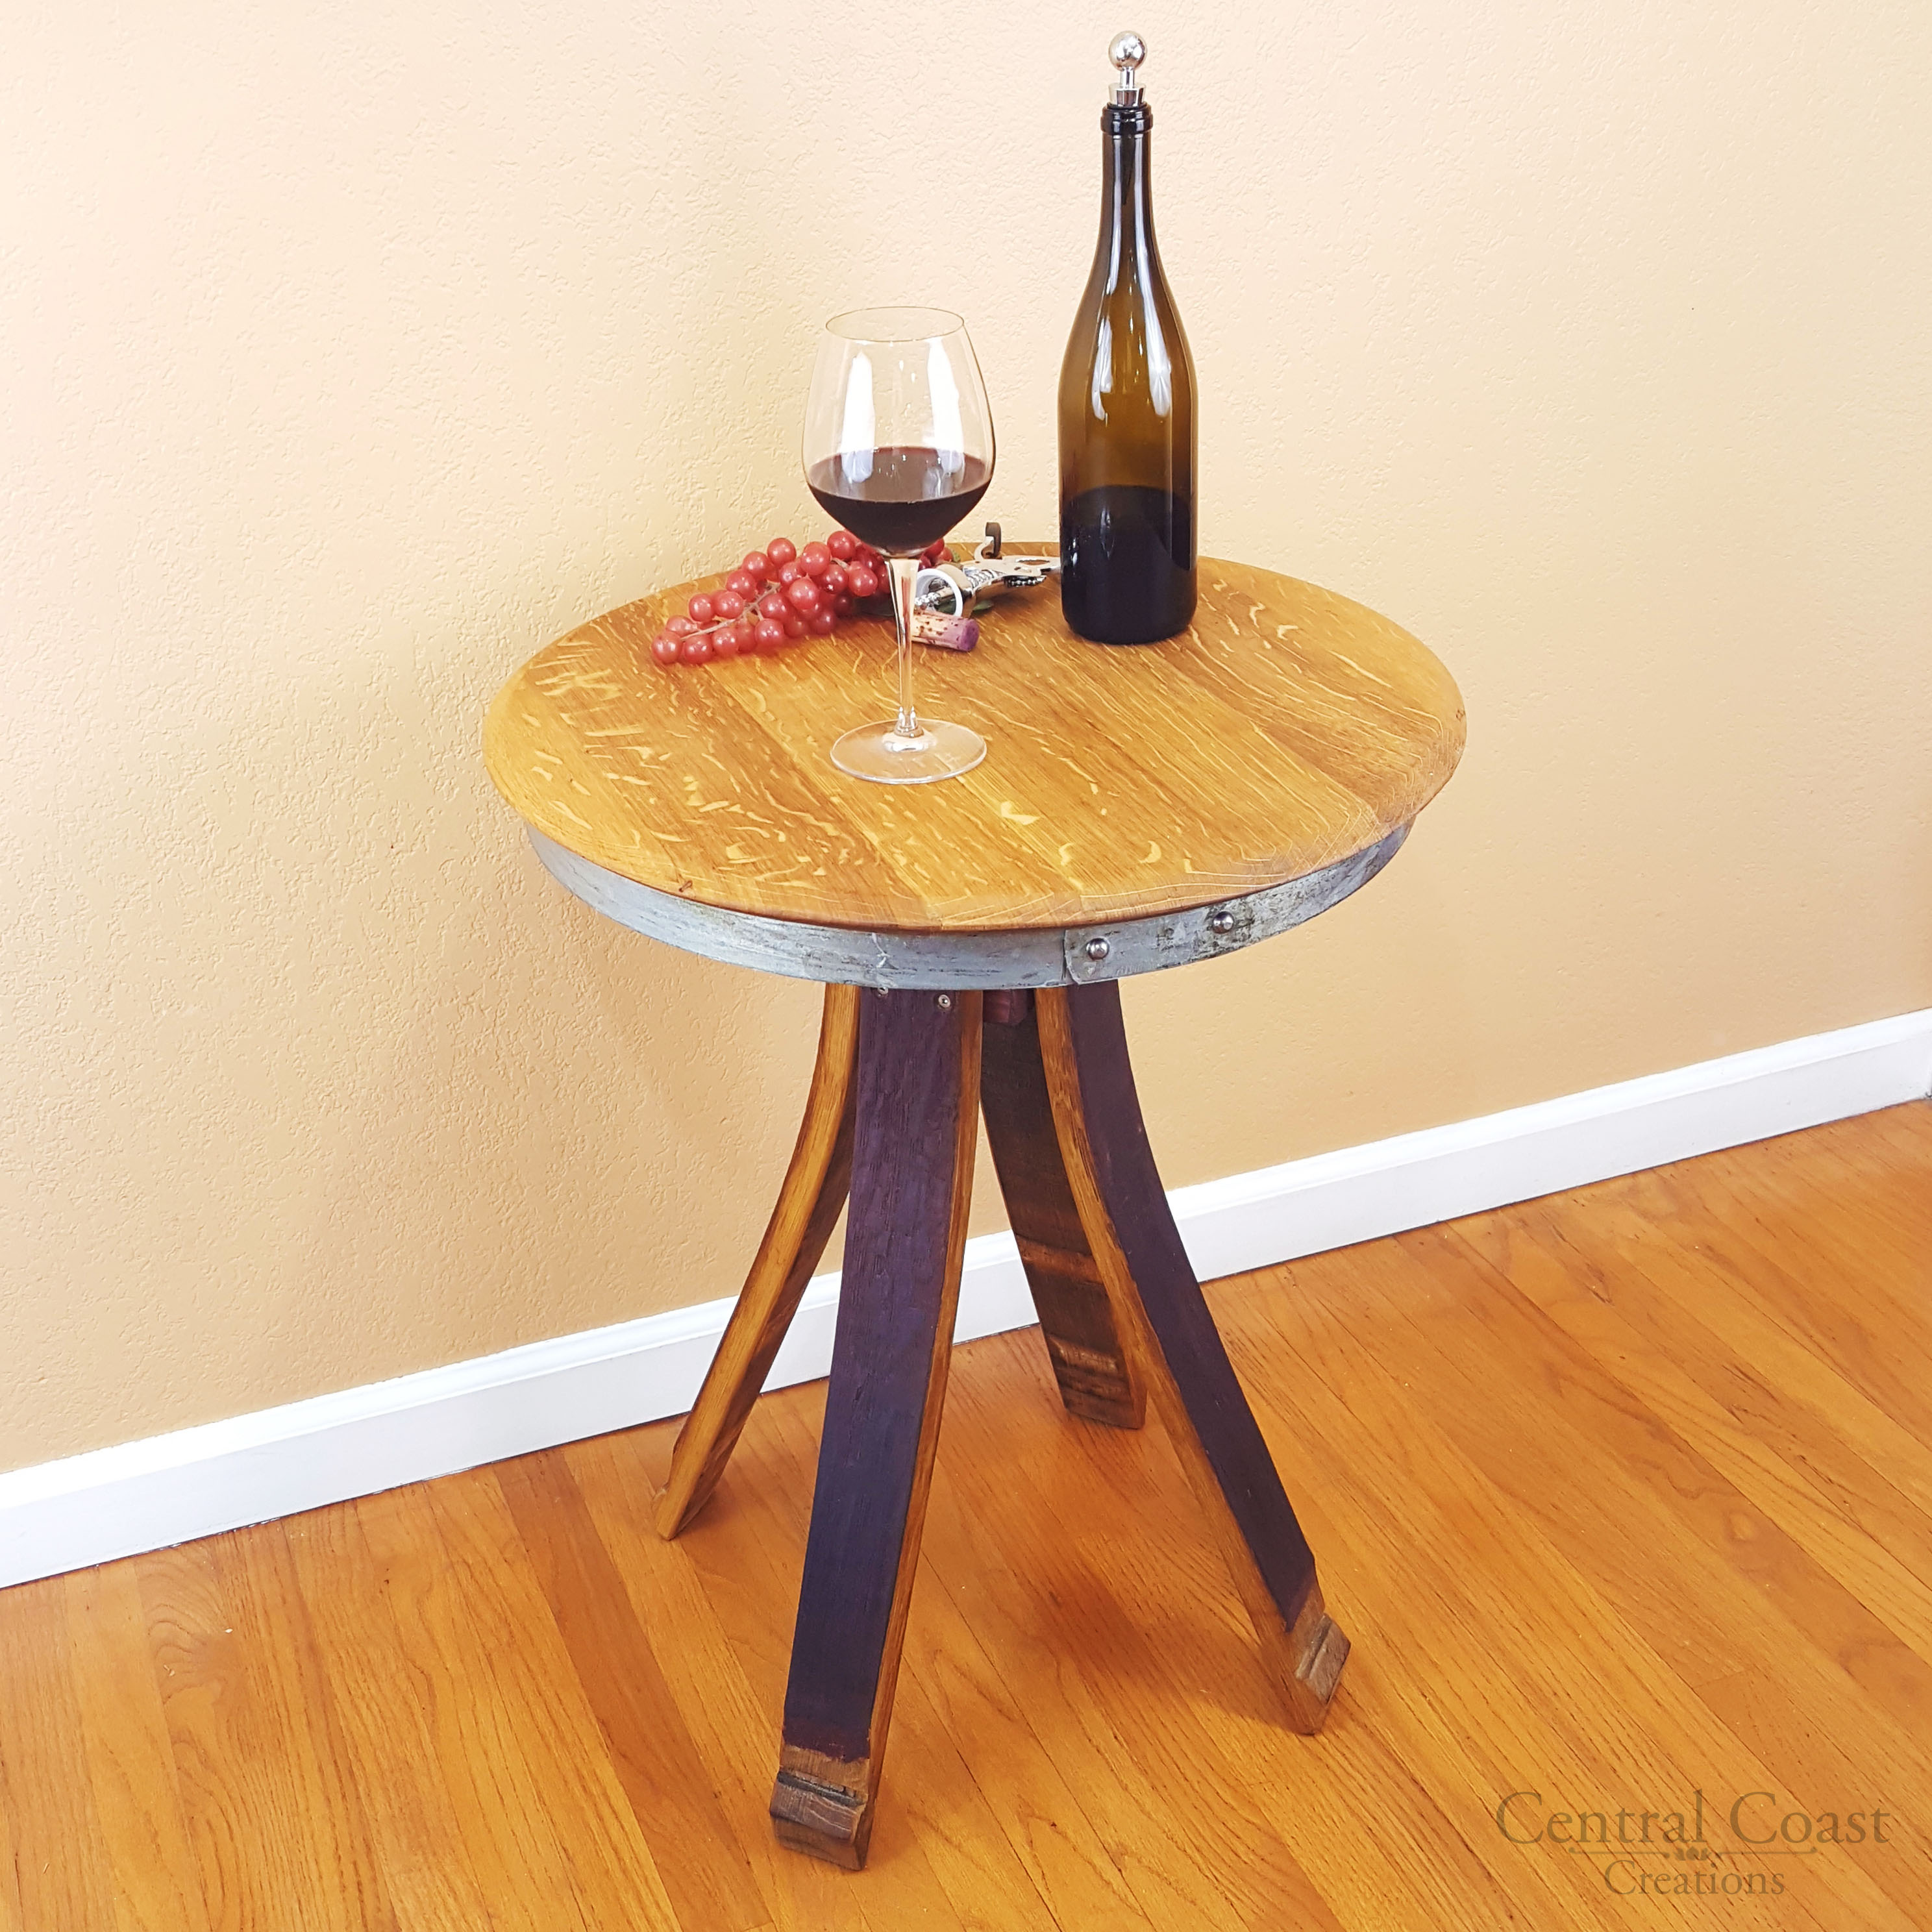 Inverted Leg Wine Barrel Table Central Coast Creations